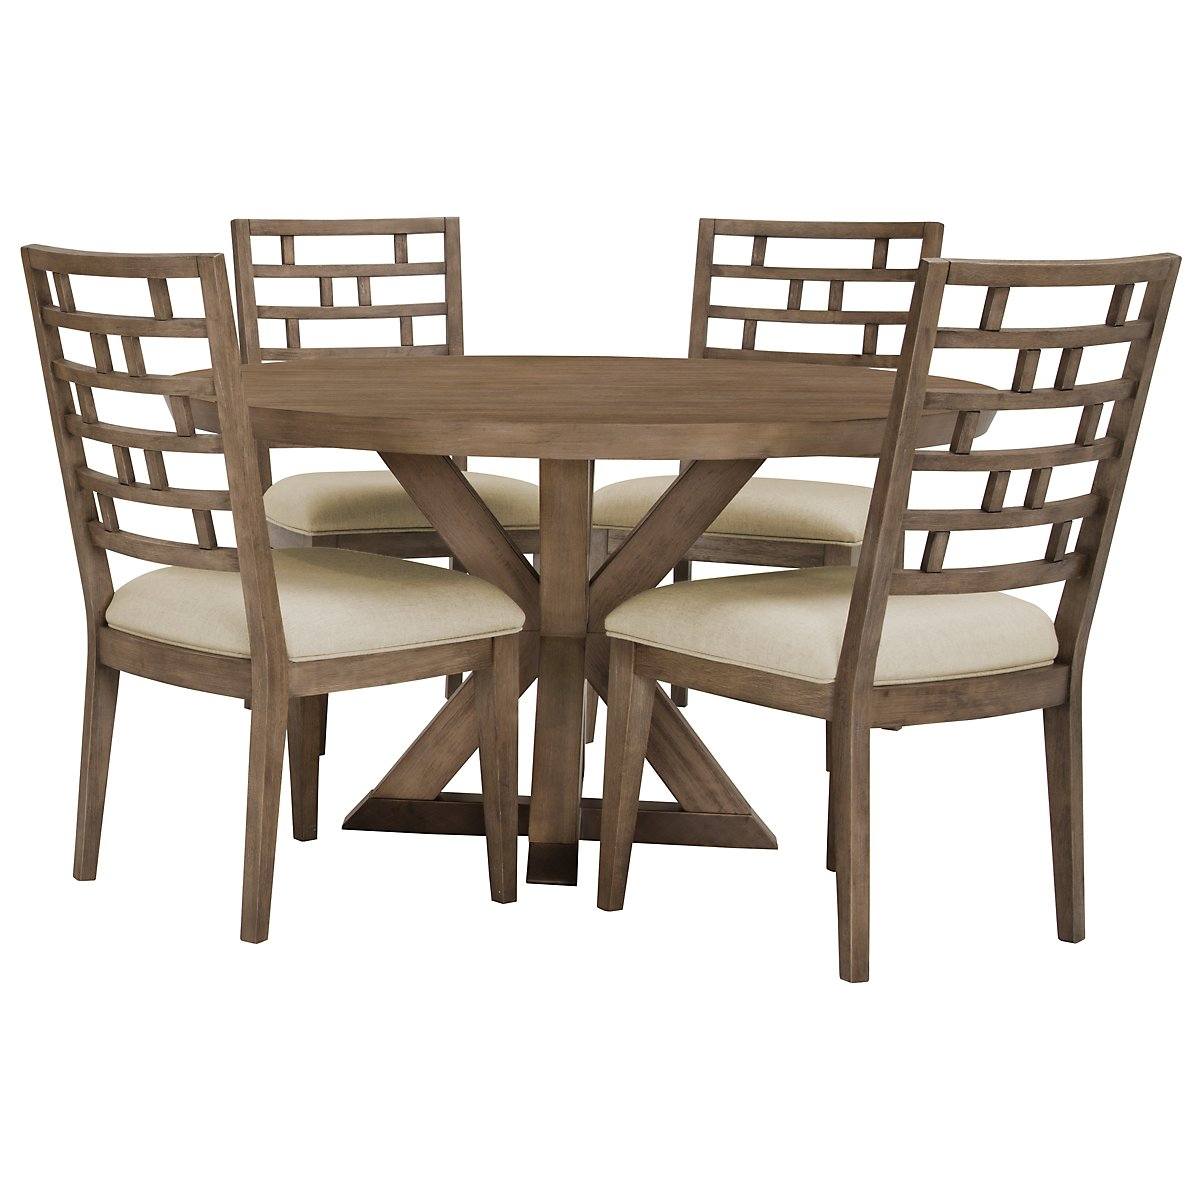 Mirabelle Light Tone Round Table & 4 Wood Chairs